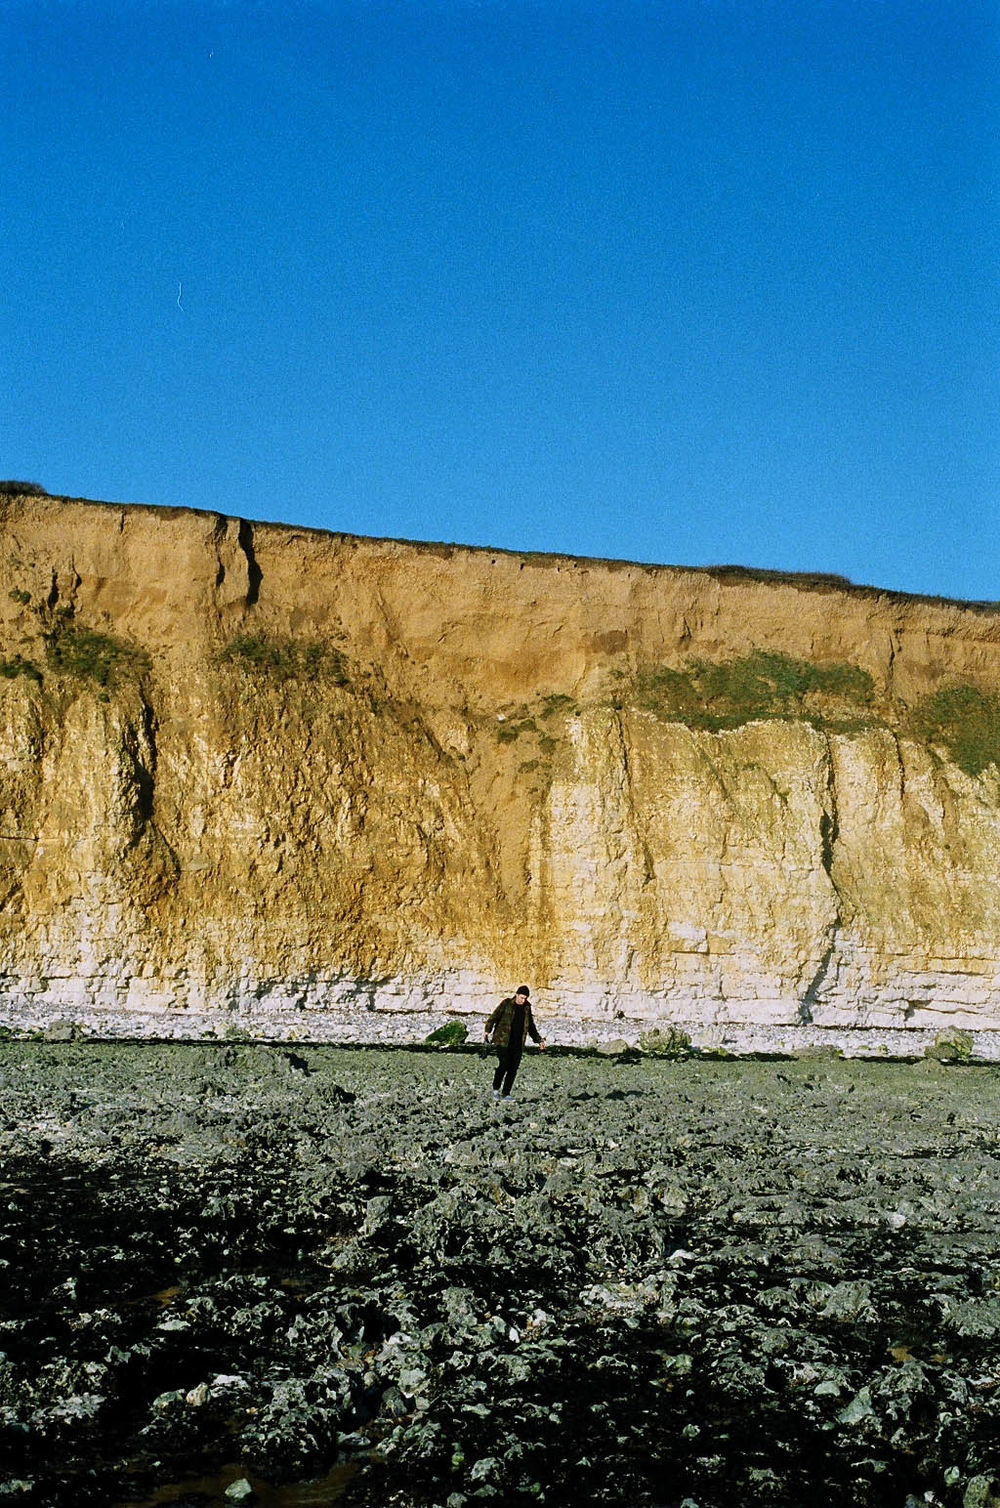 Seaford (UK), 2012